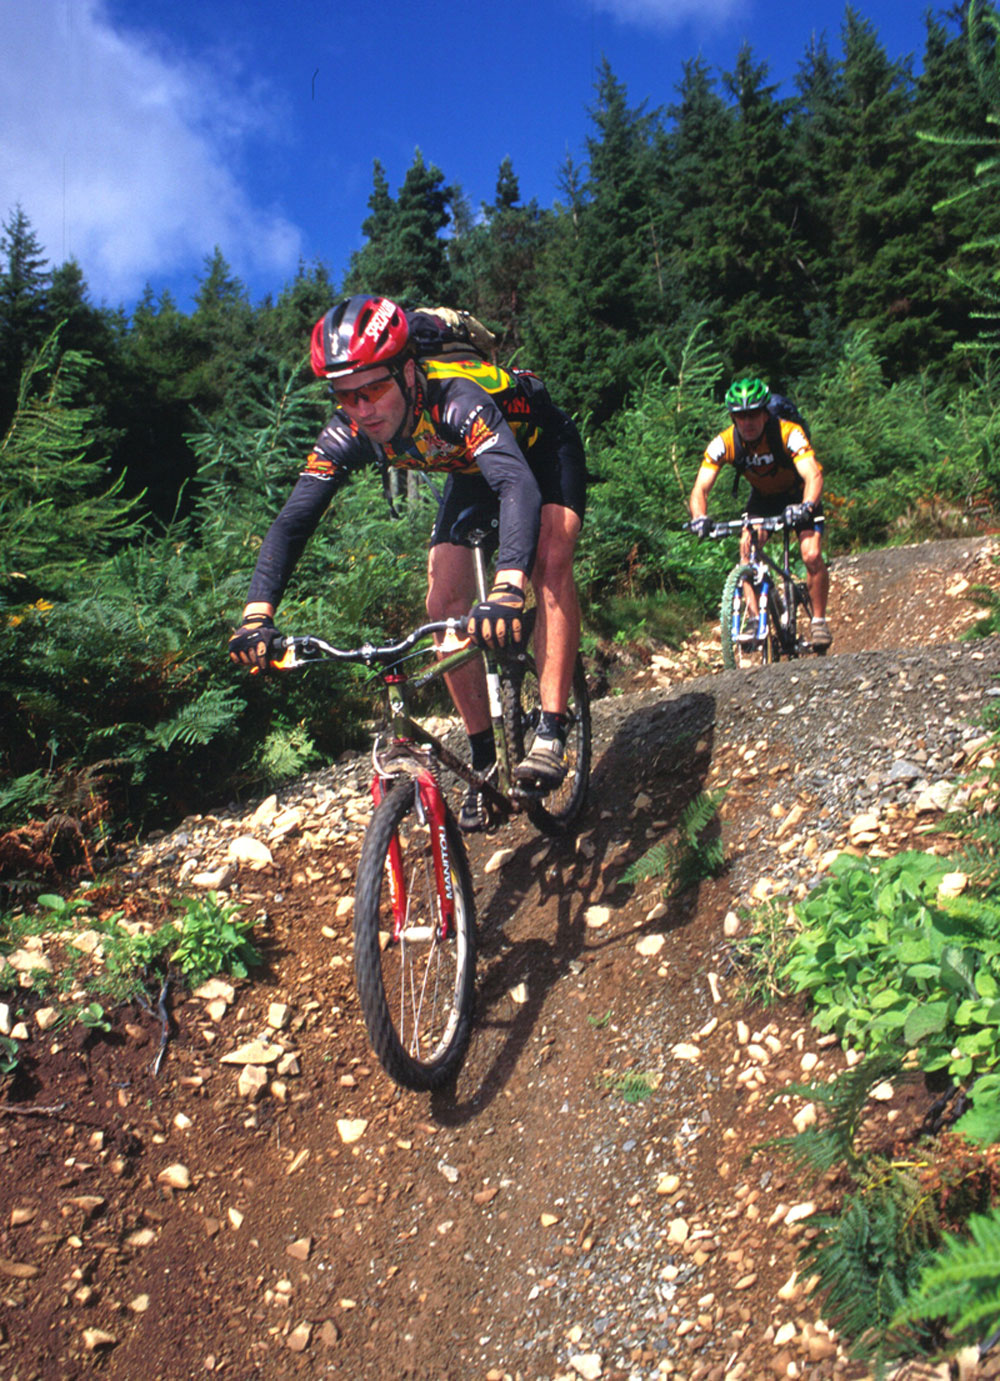 Cue this very old stock FC photo of Chris Duncan riding his V-braked Guyzer frame through the forests.